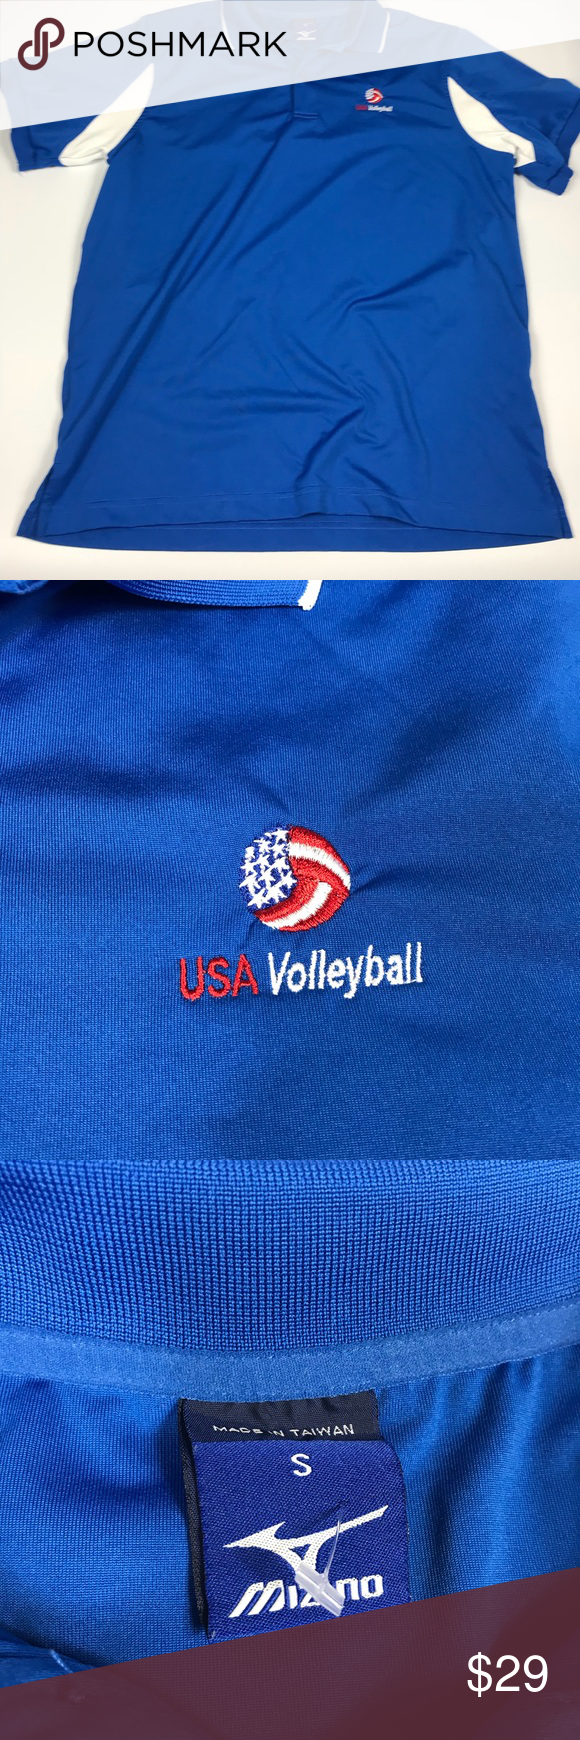 Mizuno Team Usa Volleyball Men S Polo Shirt This Item Is In Overall Good Used Condition Comes From A Smoke Free Home Usa Volleyball Volleyball Shirt Fashion